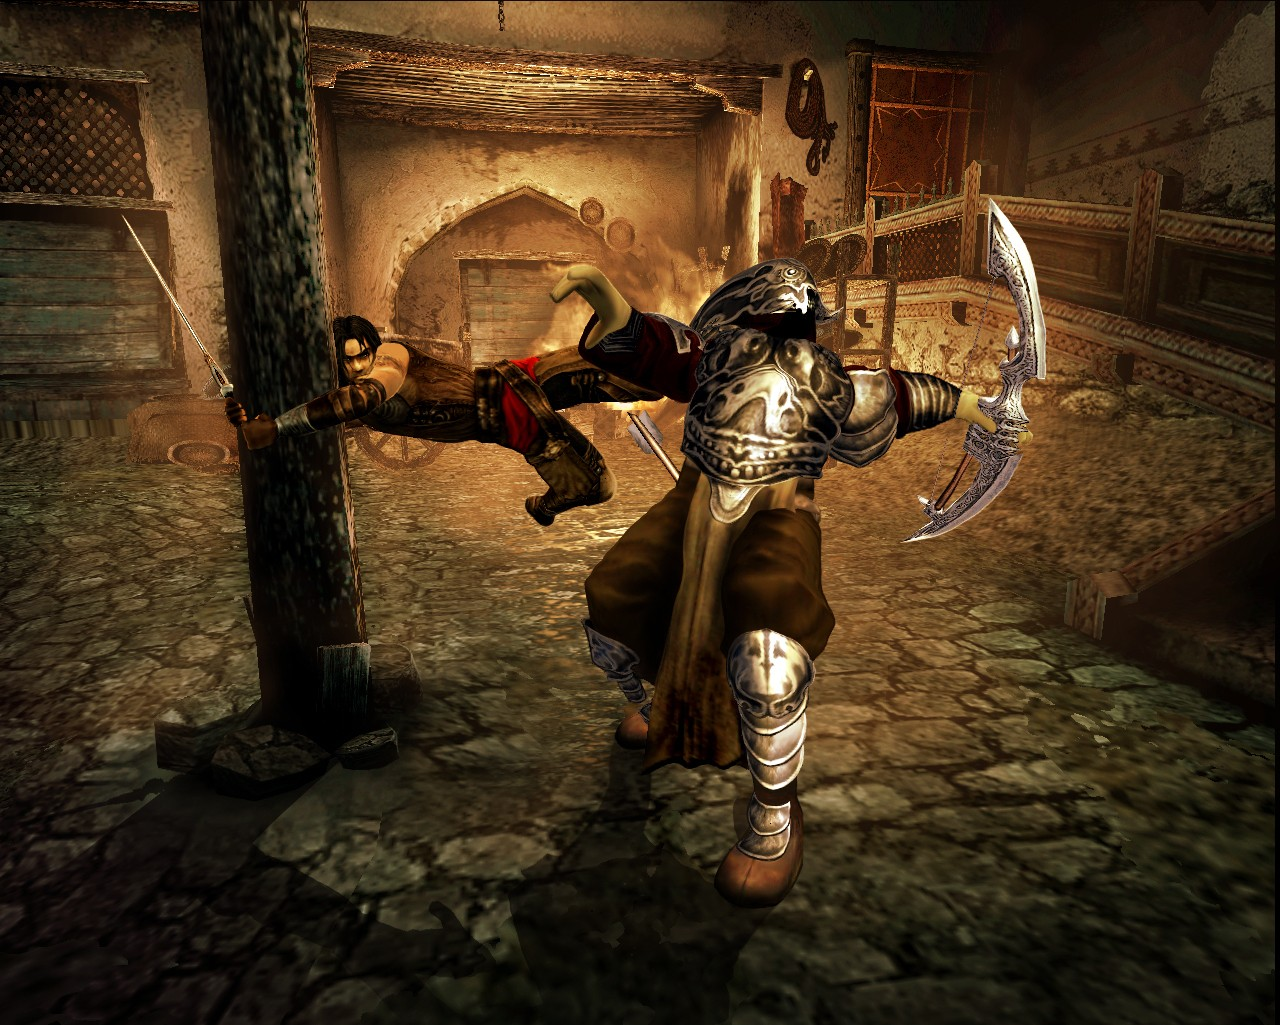 Prince of Persia: The Sands of Time Cheats